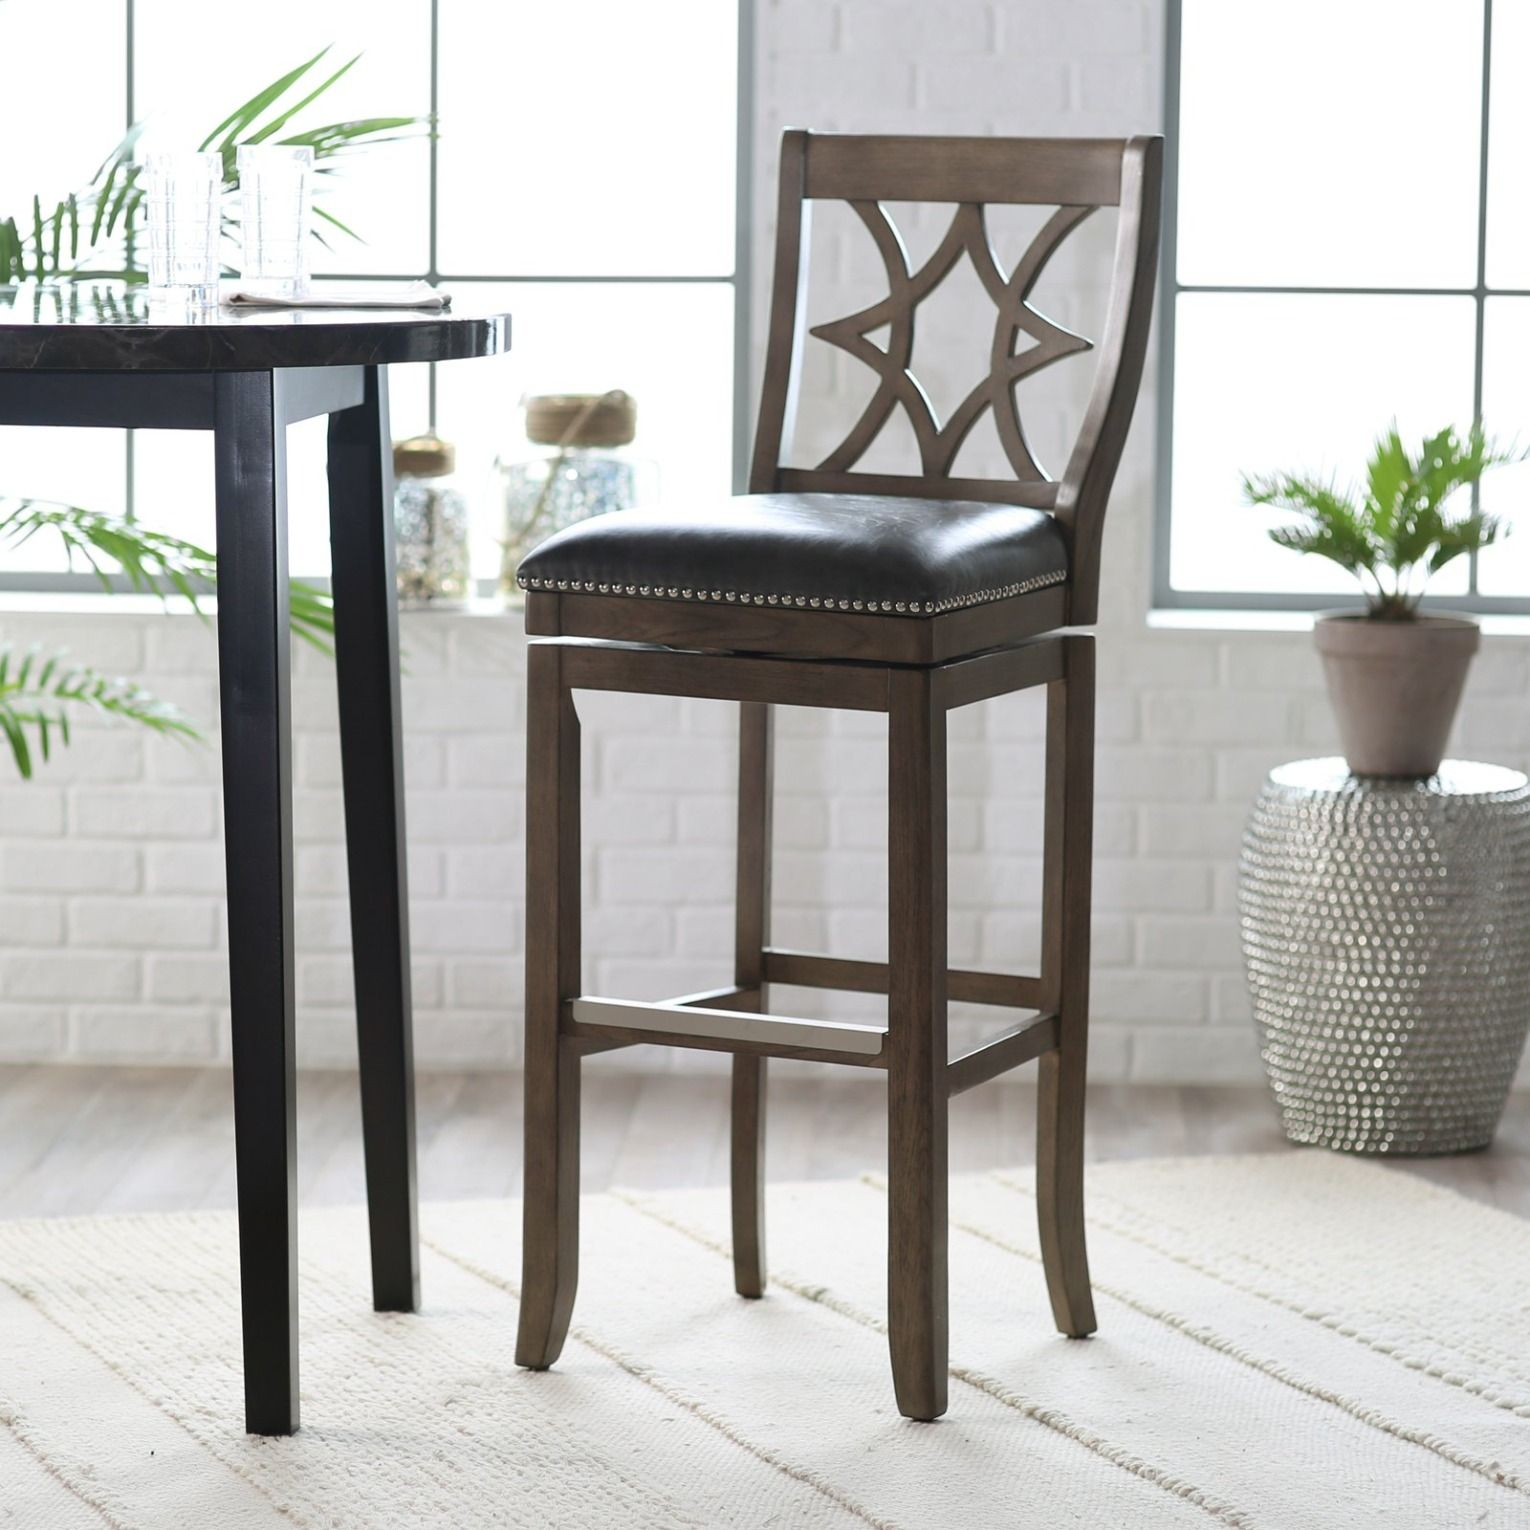 Belham Living Oliver Square Seat Swivel Extra Tall Bar Stool Bar